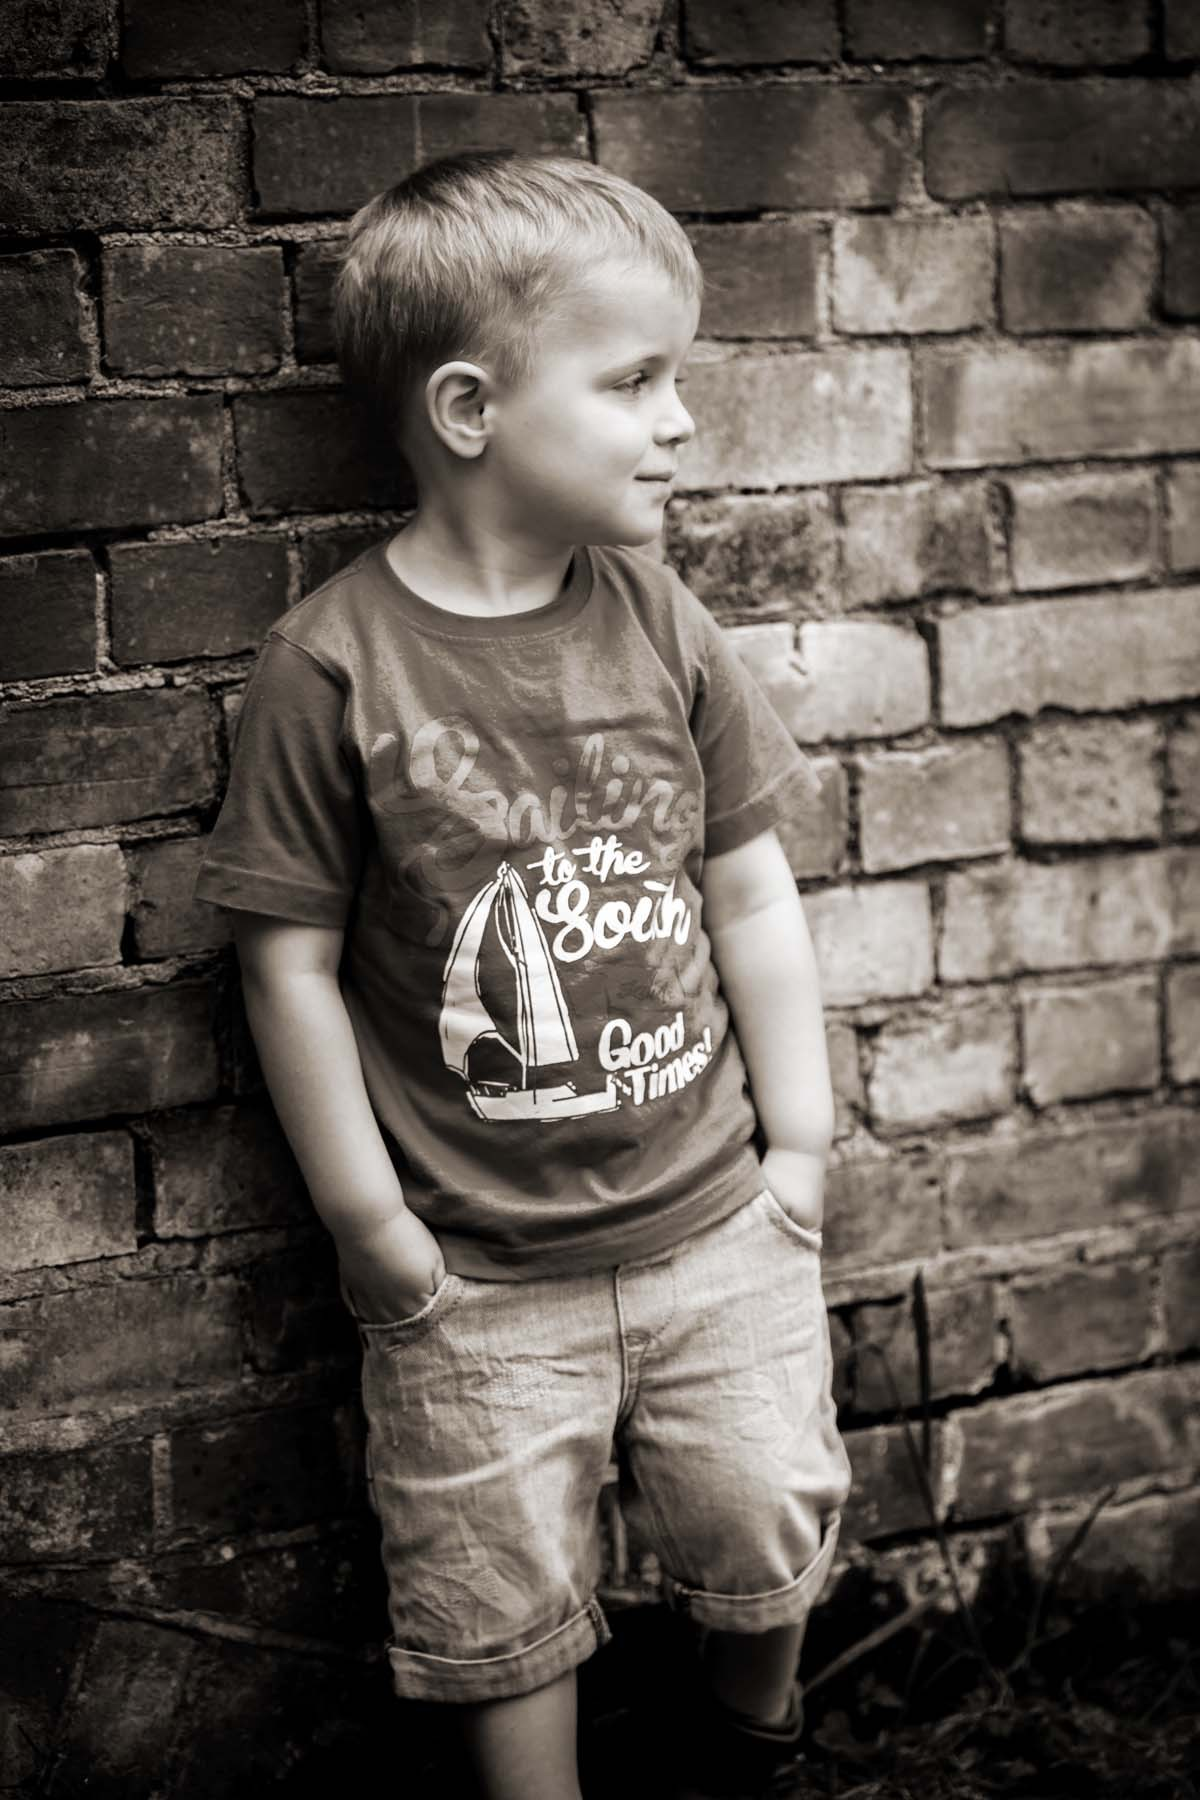 Child Photographer in Sussex & Surrey, East Grinstead & Crawley (9)